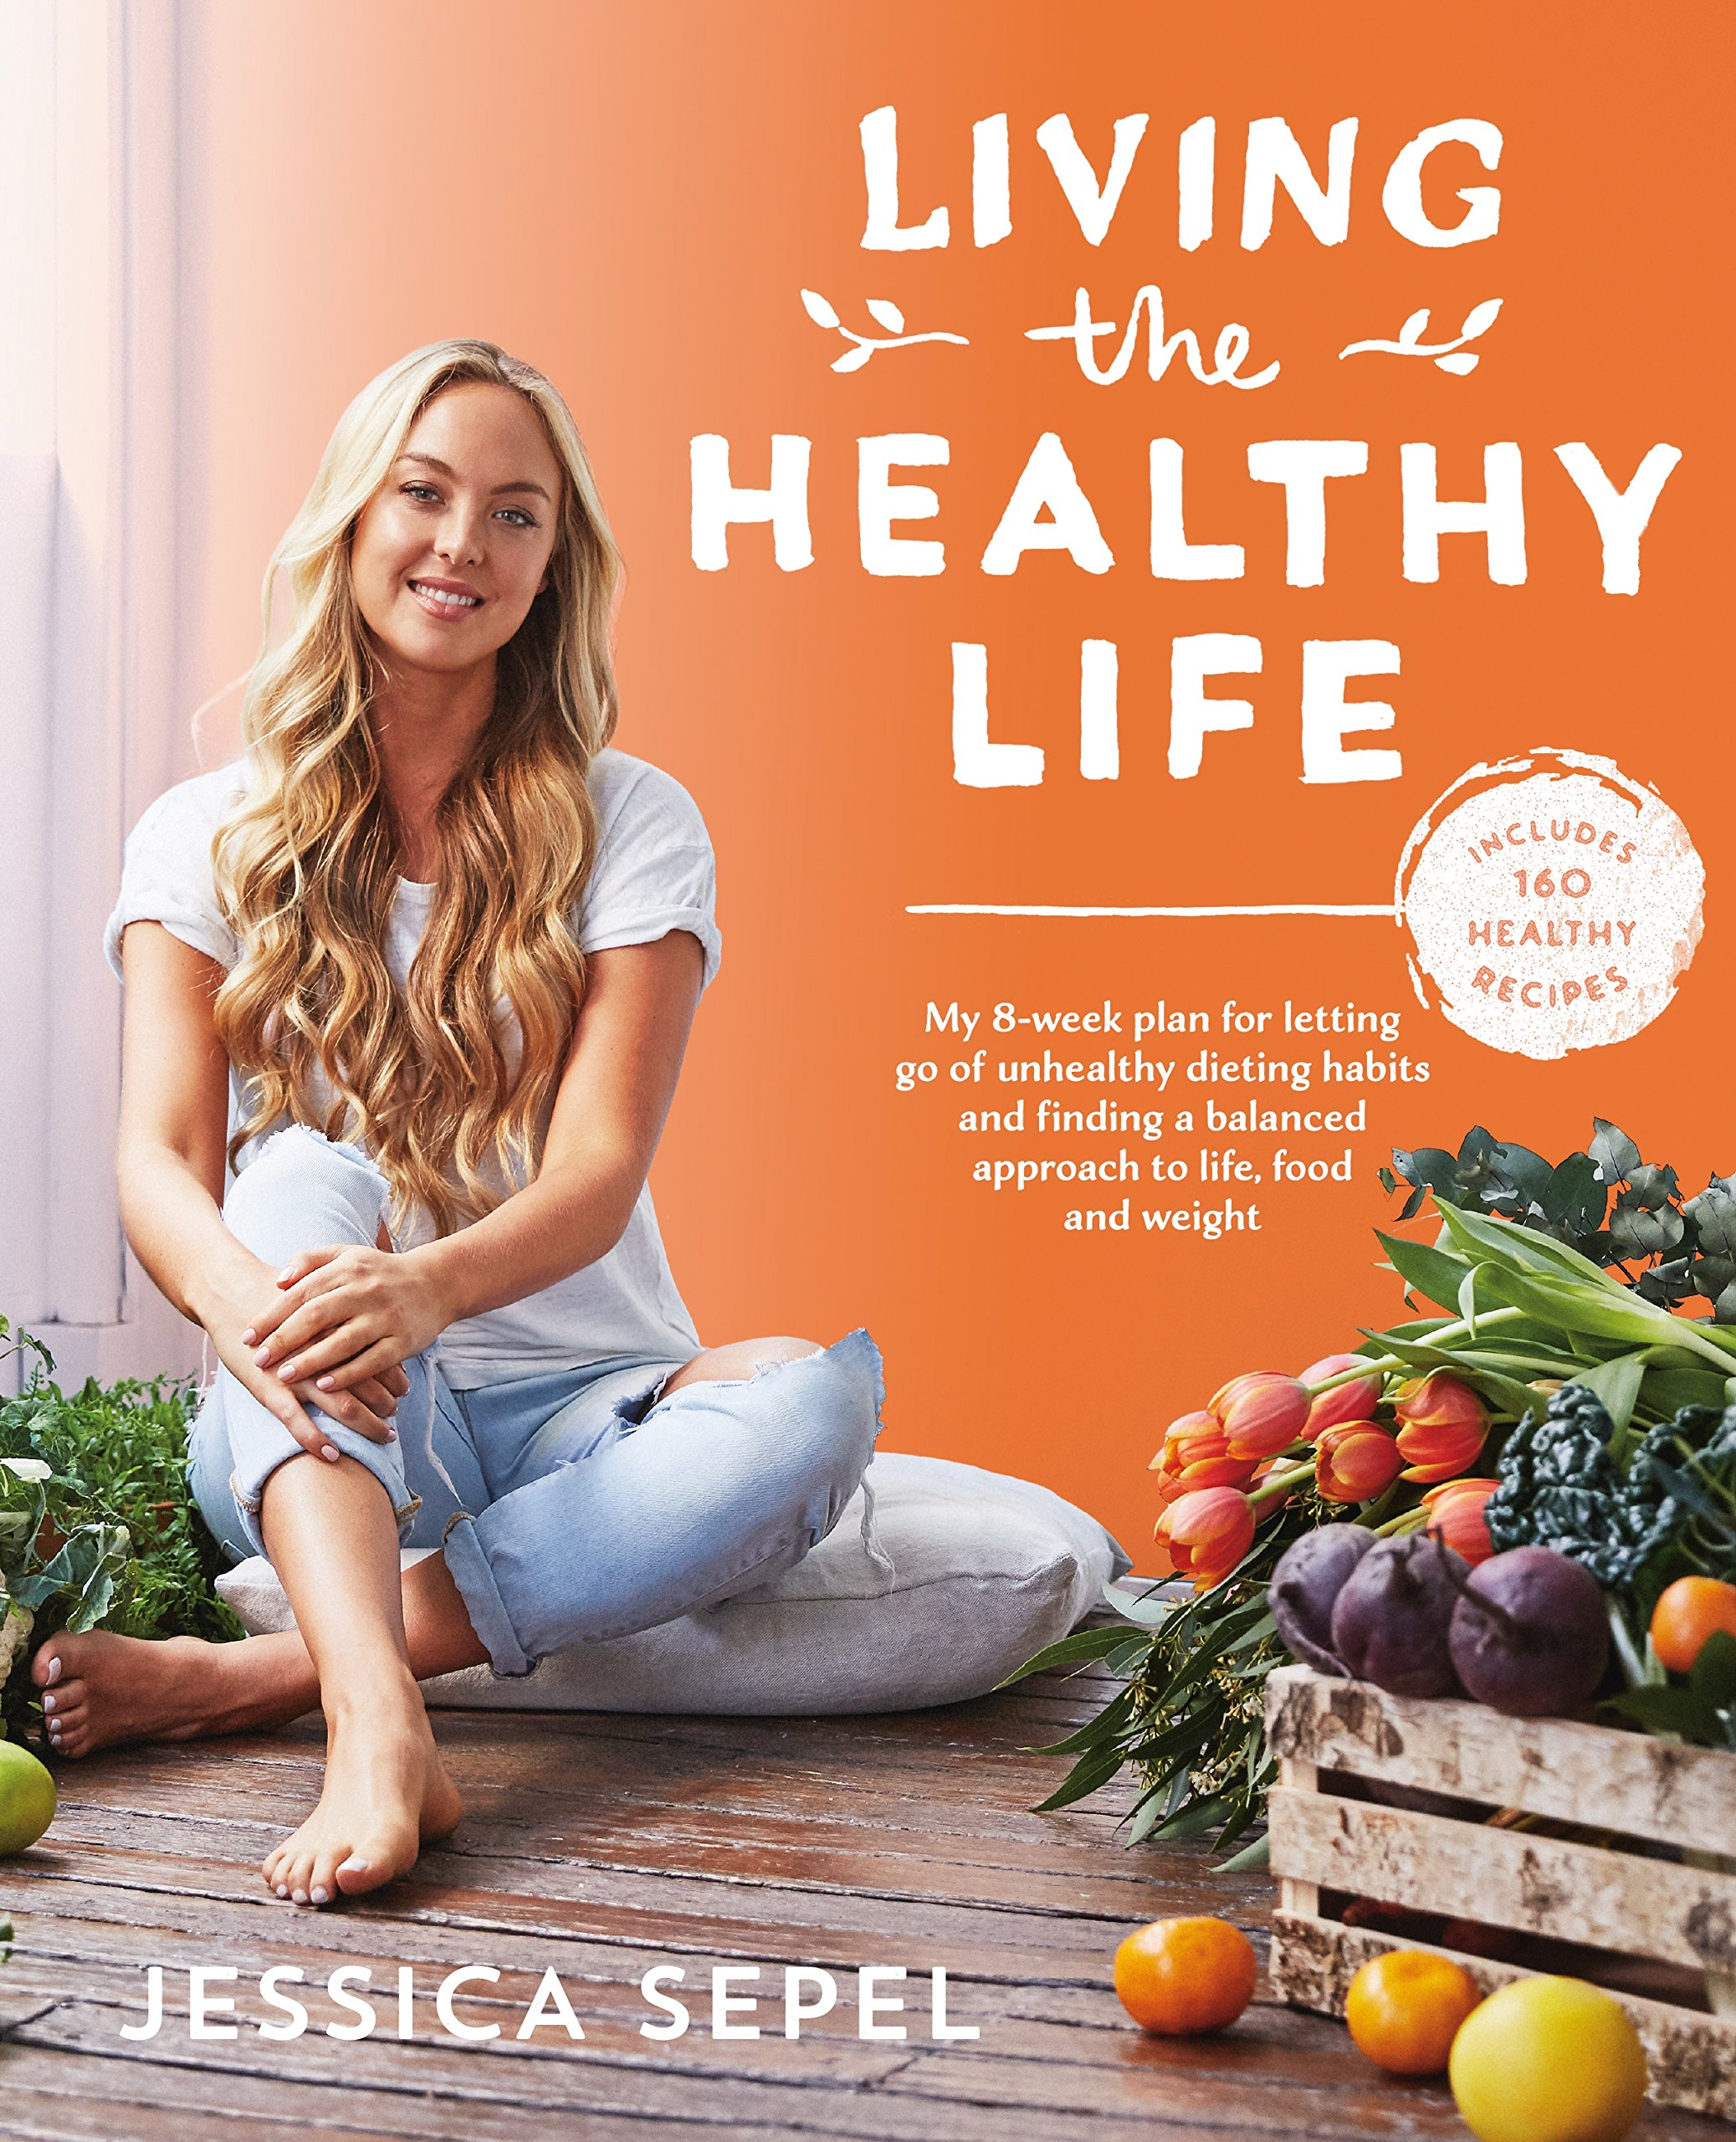 Living the Healthy Life: An 8 Week Plan for Letting Go of Unhealthy Dieting  Habits and Finding a Balanced Approach to Weight Loss: Sepel, Jessica:  9781509828371: Amazon.com: Books